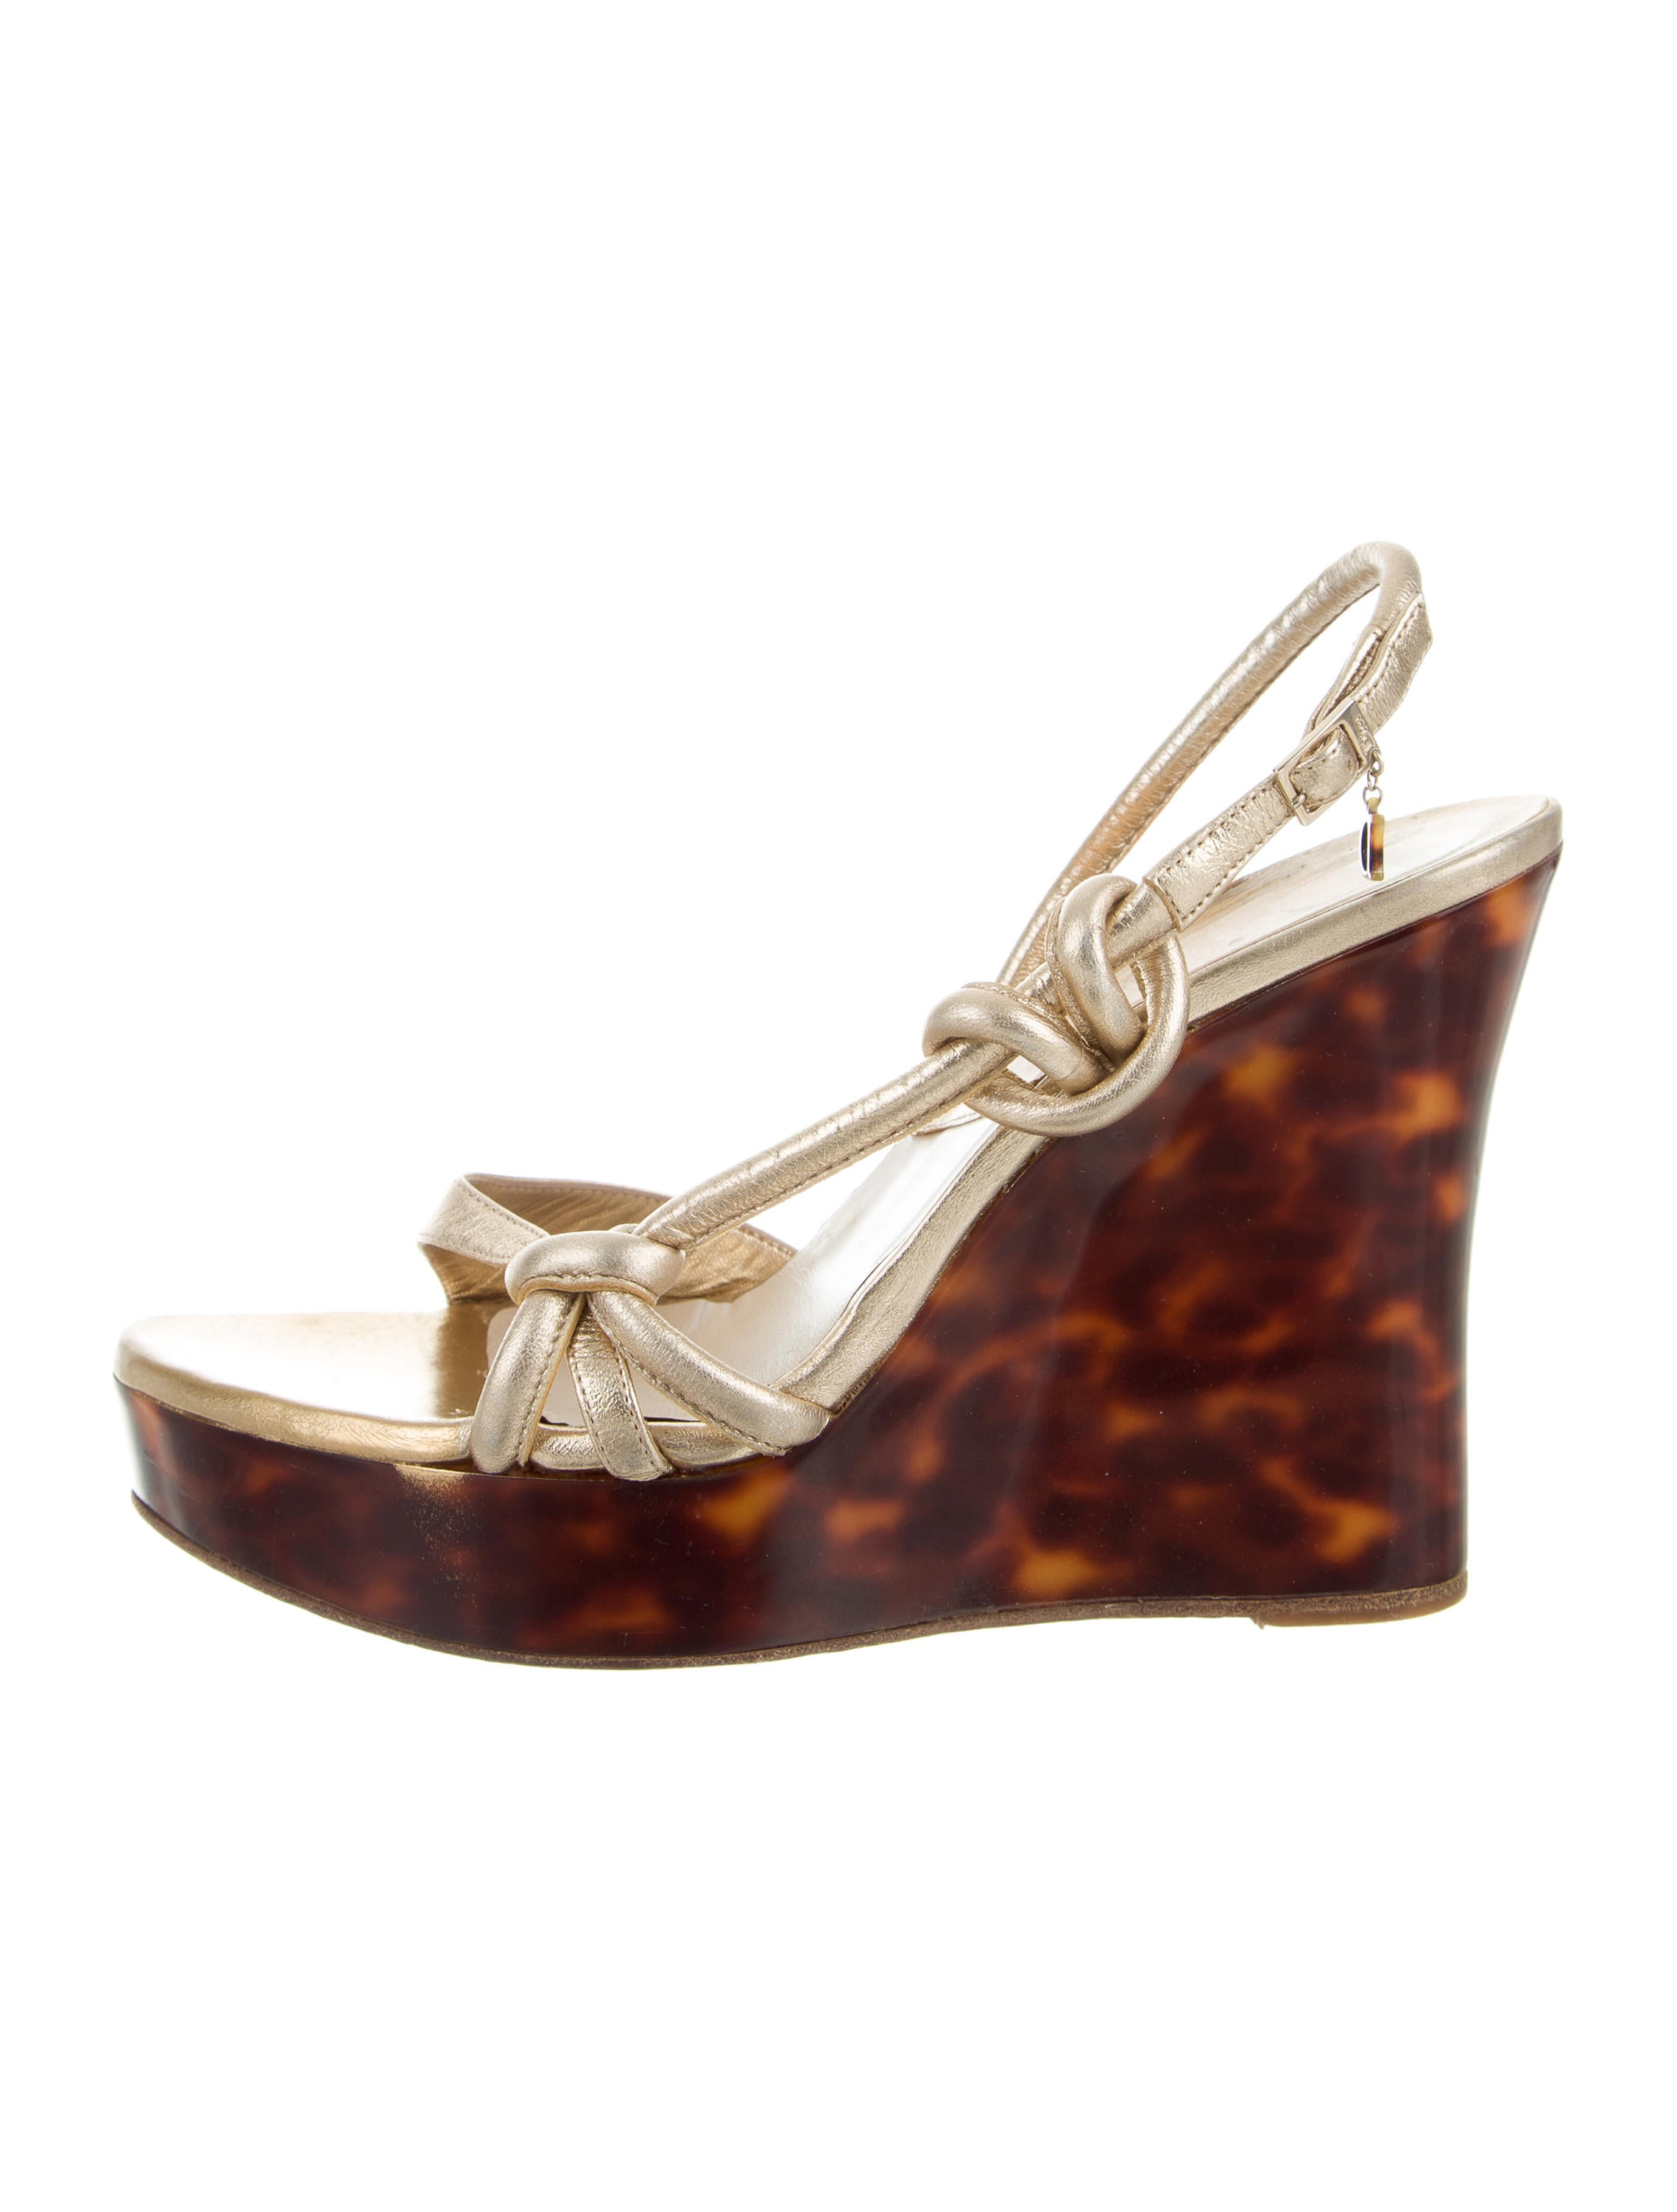 Christian Dior Leather Wedge Sandals shopping online free shipping explore niOkMRgJm